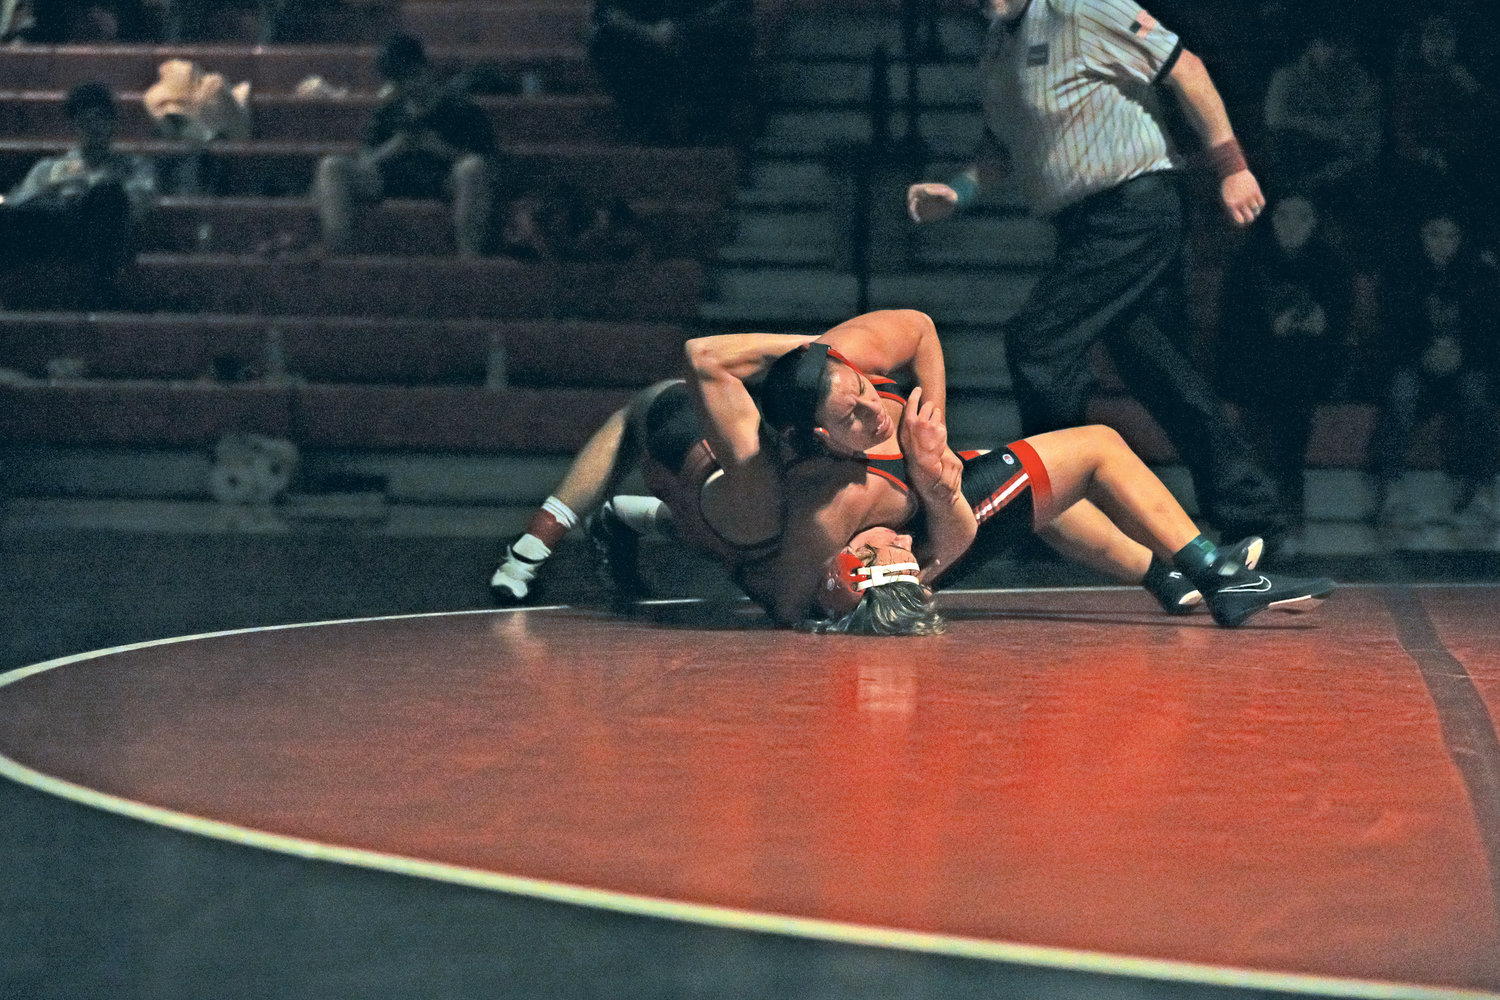 With his opponent in a headlock, Redhawks wrestler Exael Hernandez rests his weight on his opponent's chest to put a drain on his energy.